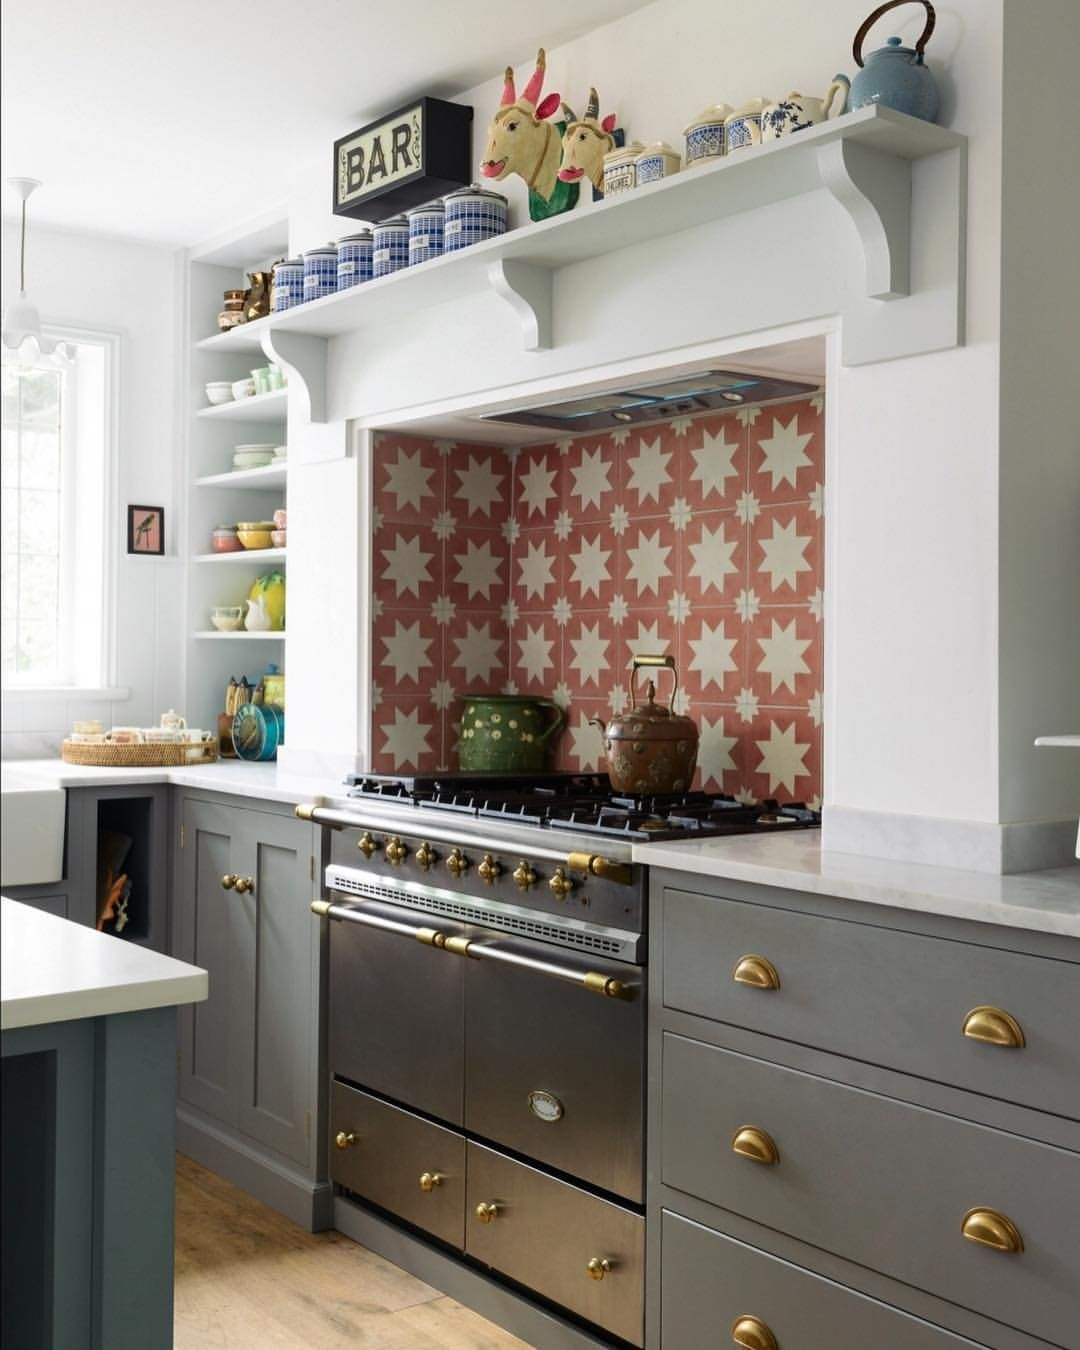 pin by jamie cuthbertson on kitchen design kitchen cooker devol rh pinterest com